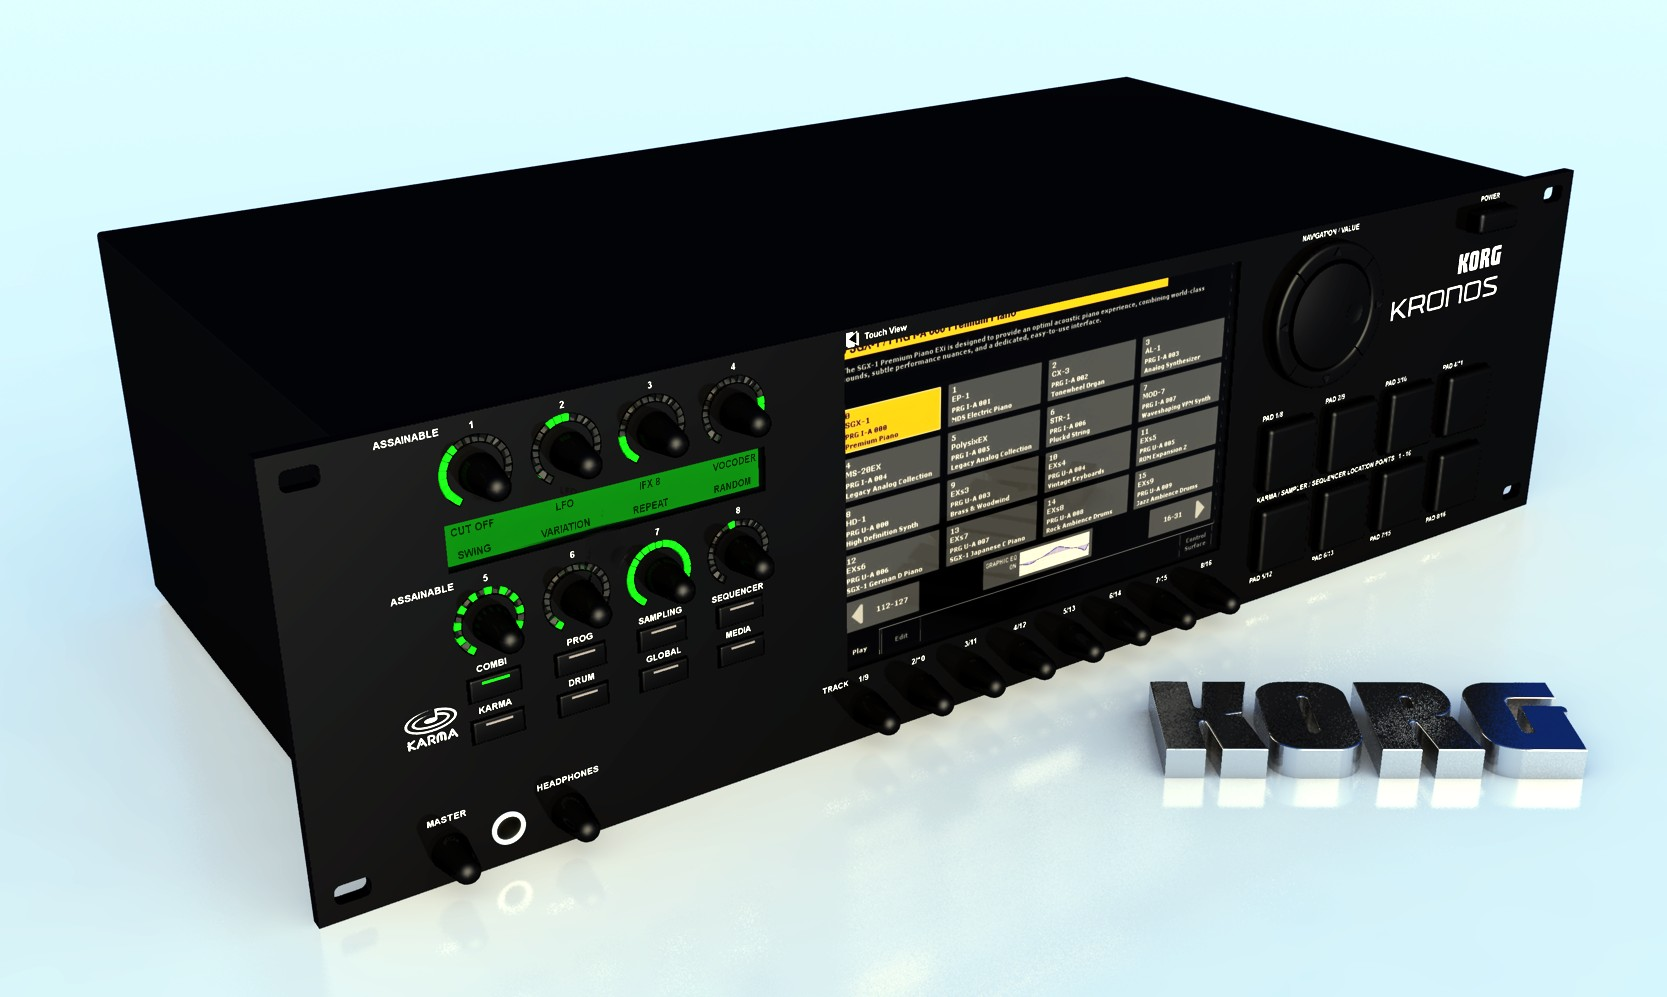 Korg Forums :: View topic - KRONOS Rack, I'd buy one